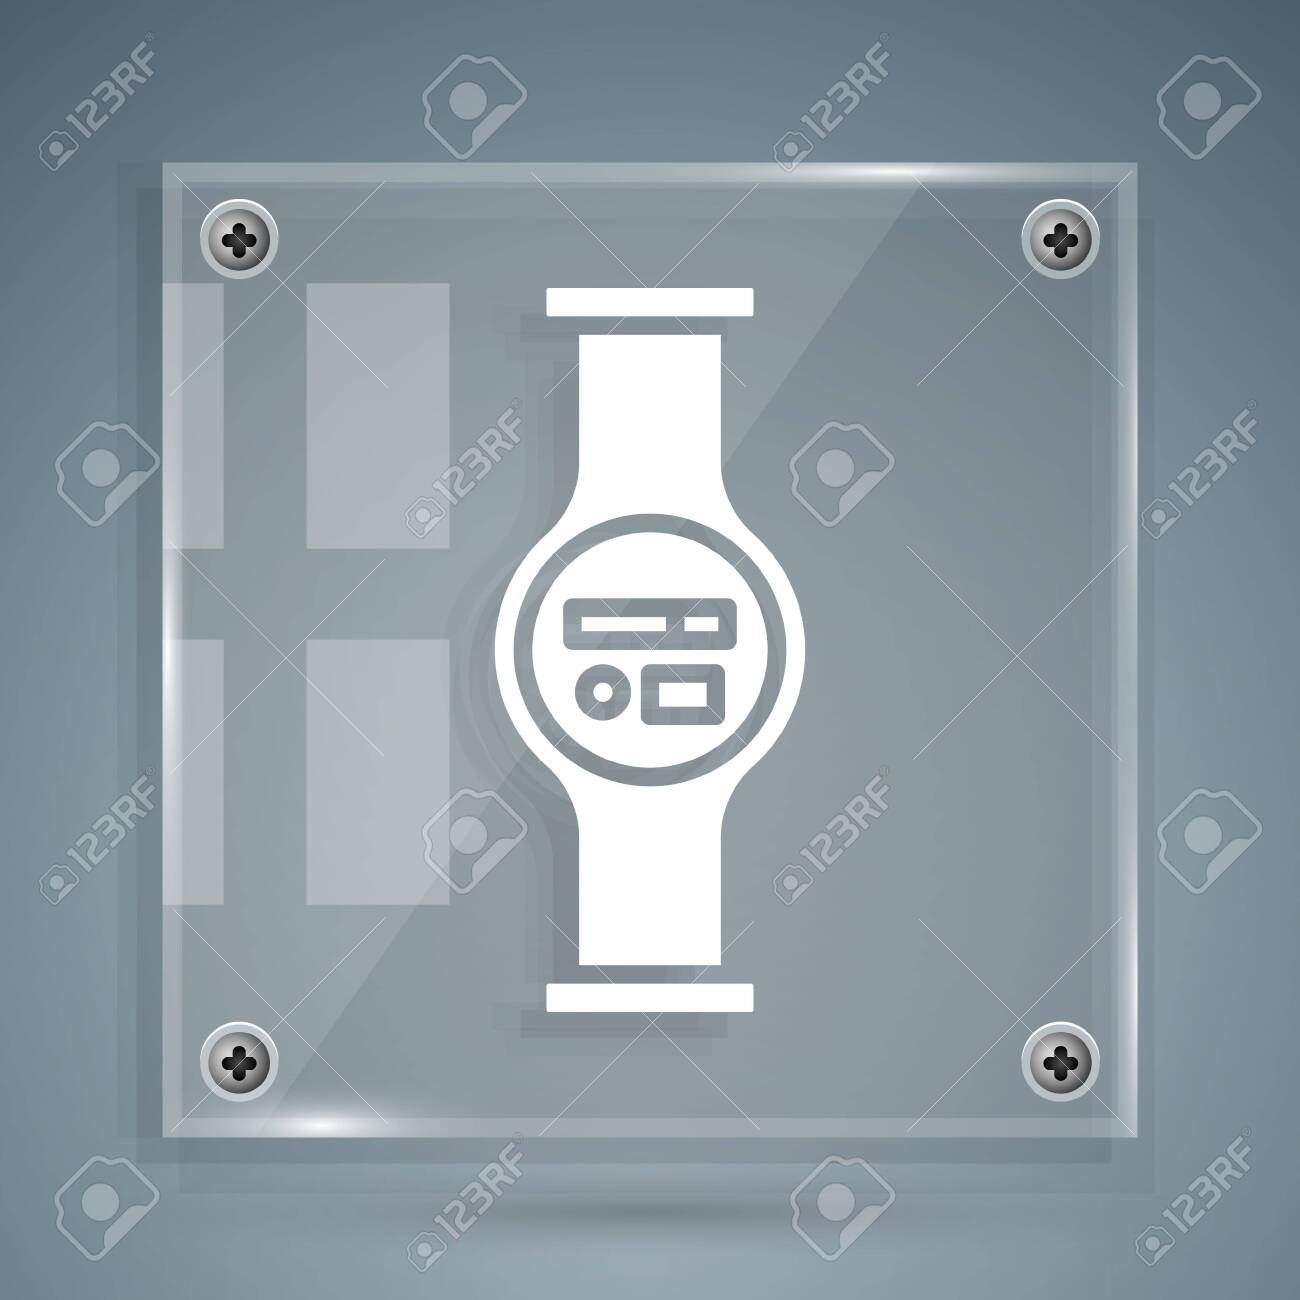 White Water meter with pipeline icon isolated on grey background. Square glass panels. Vector Illustration - 142212458